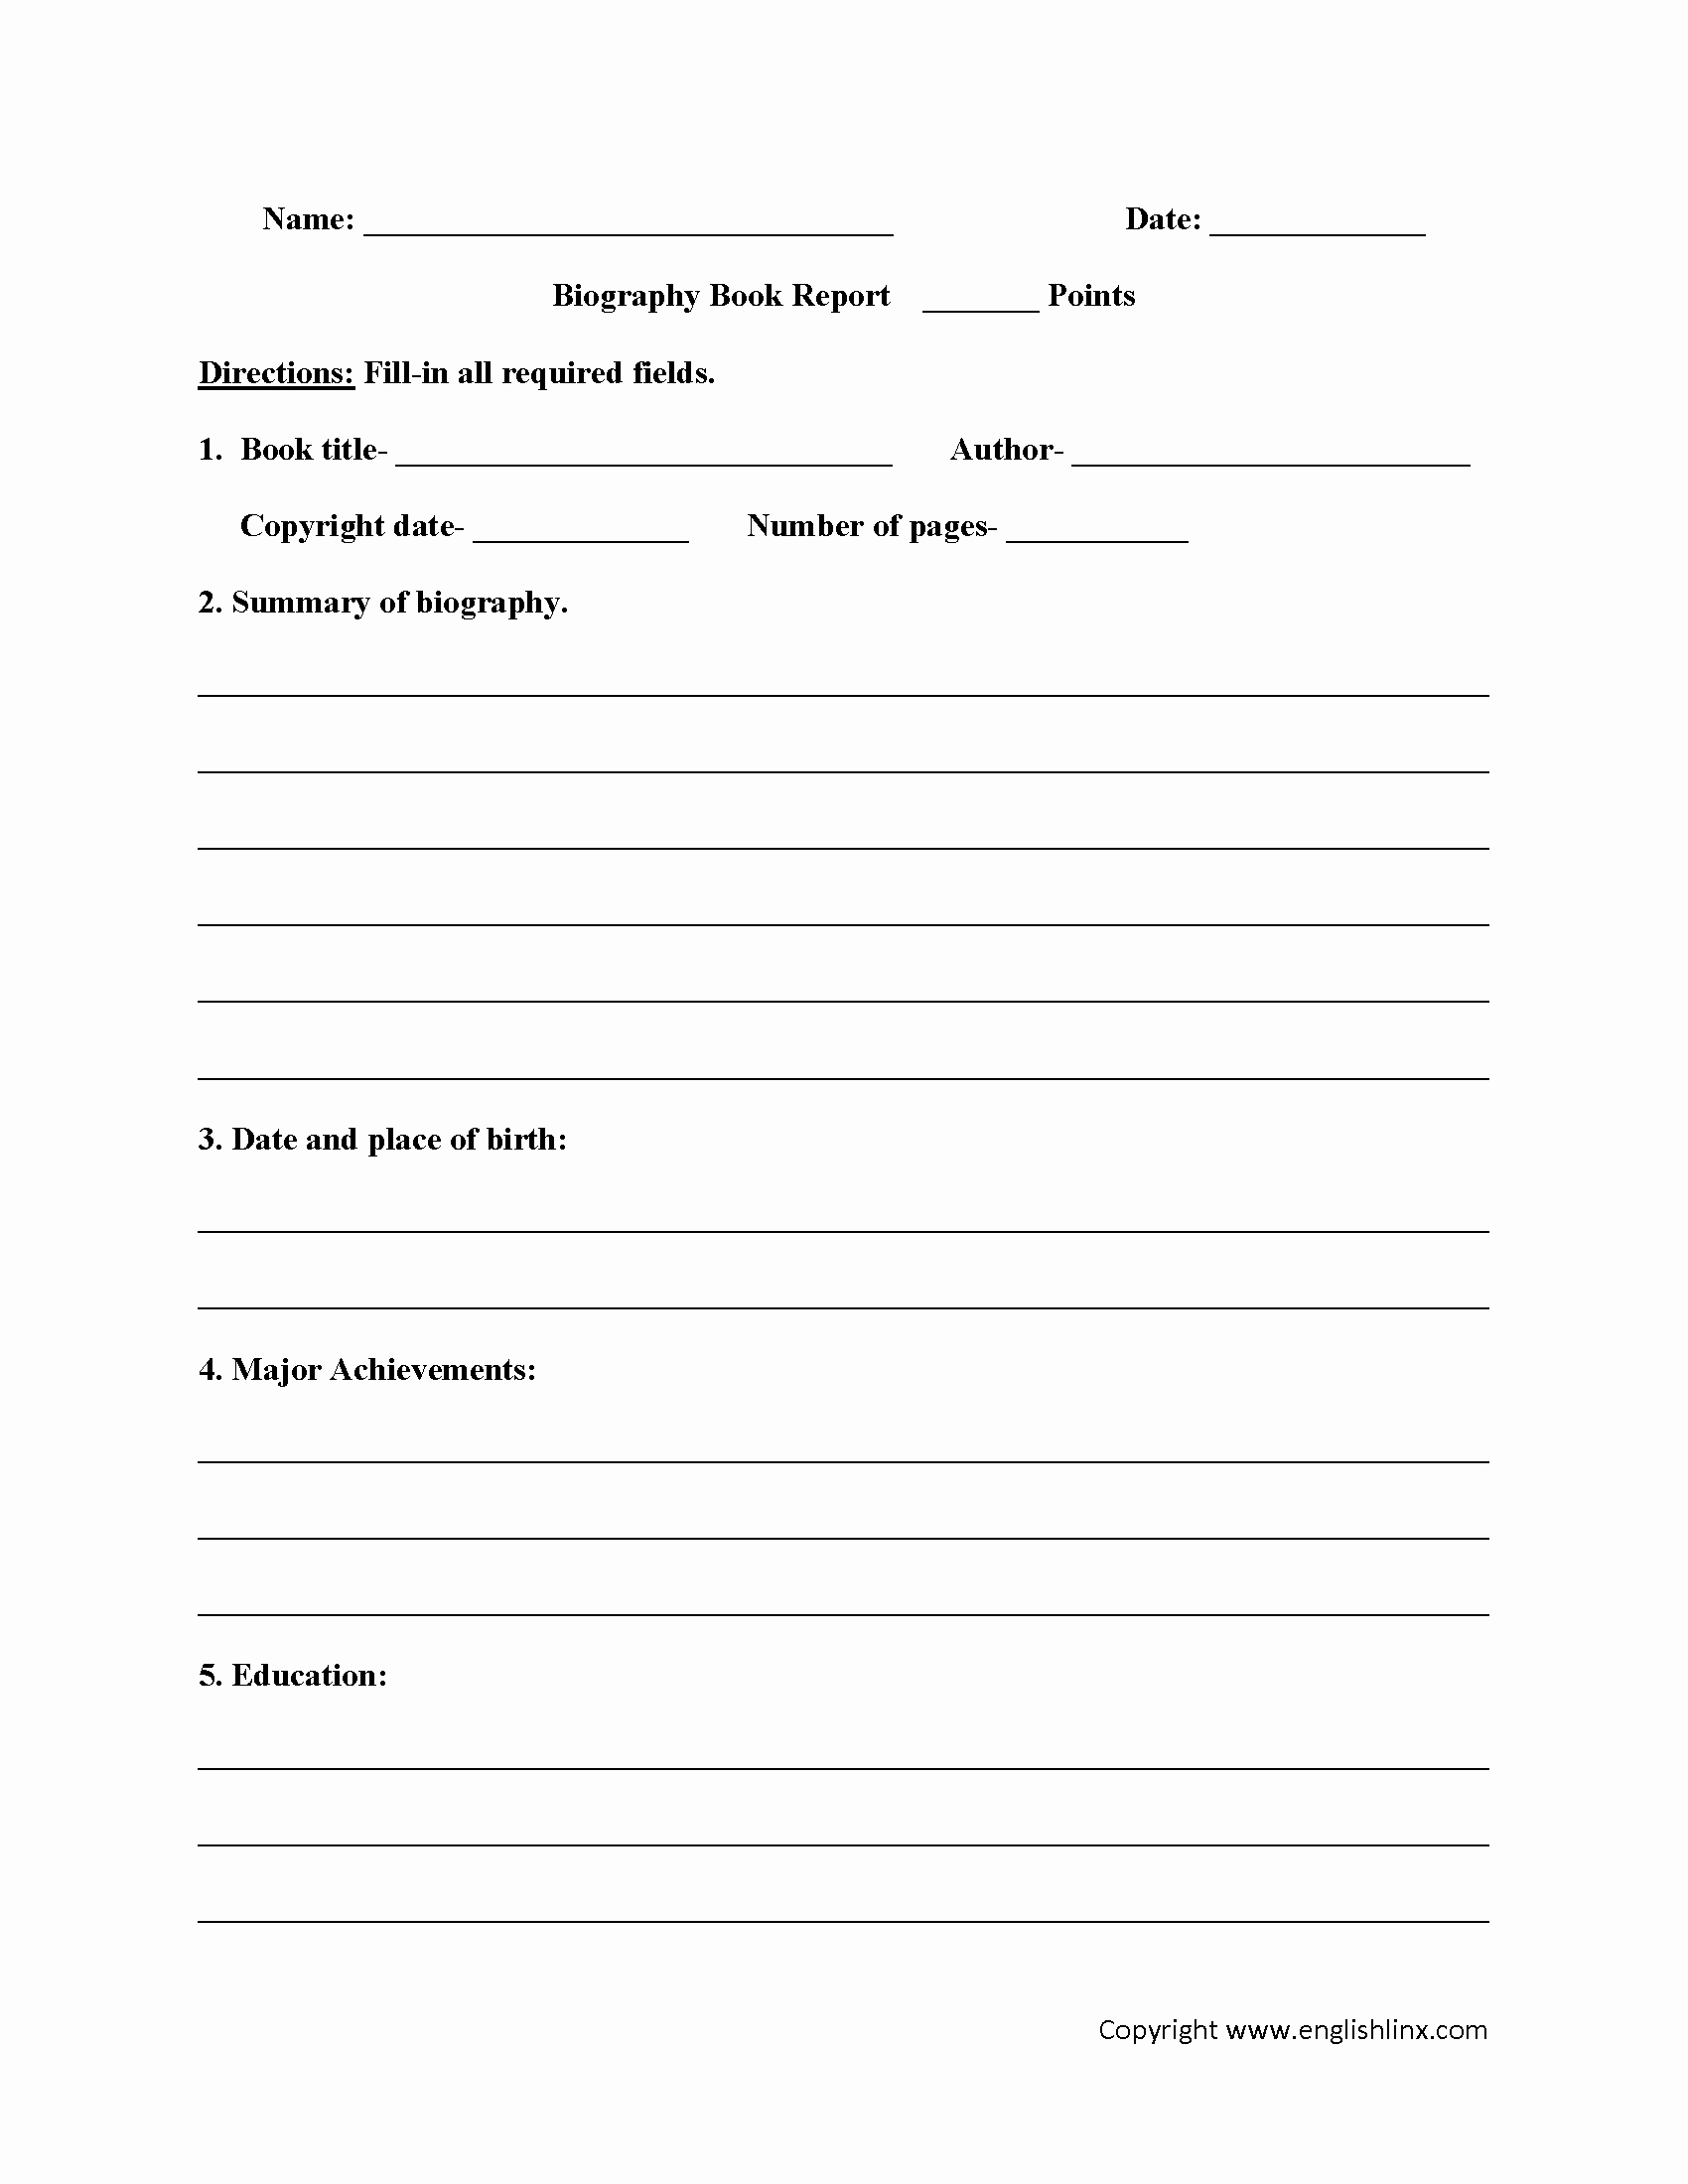 Biography Book Report Worksheets Homework